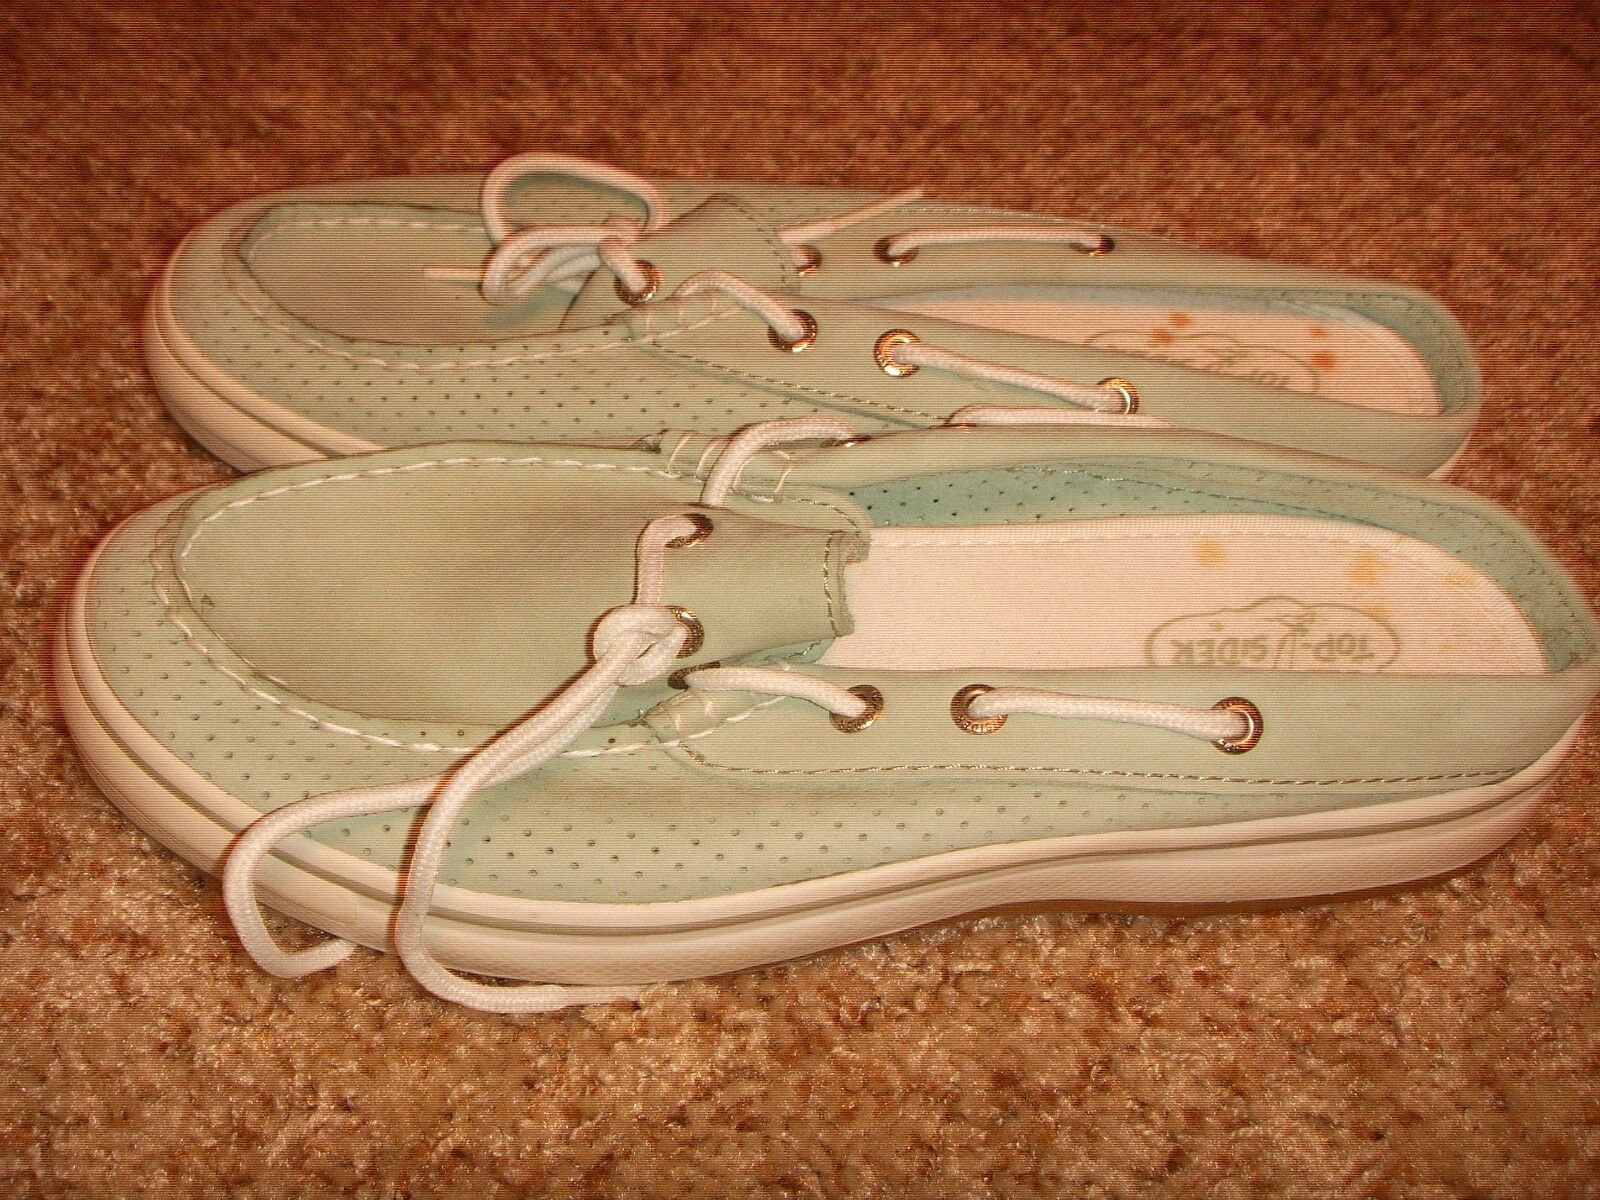 Sperry Top Sider Slip On Shoes Womens Mules Sea Green Leather Womens Shoes Sz 7M 424847